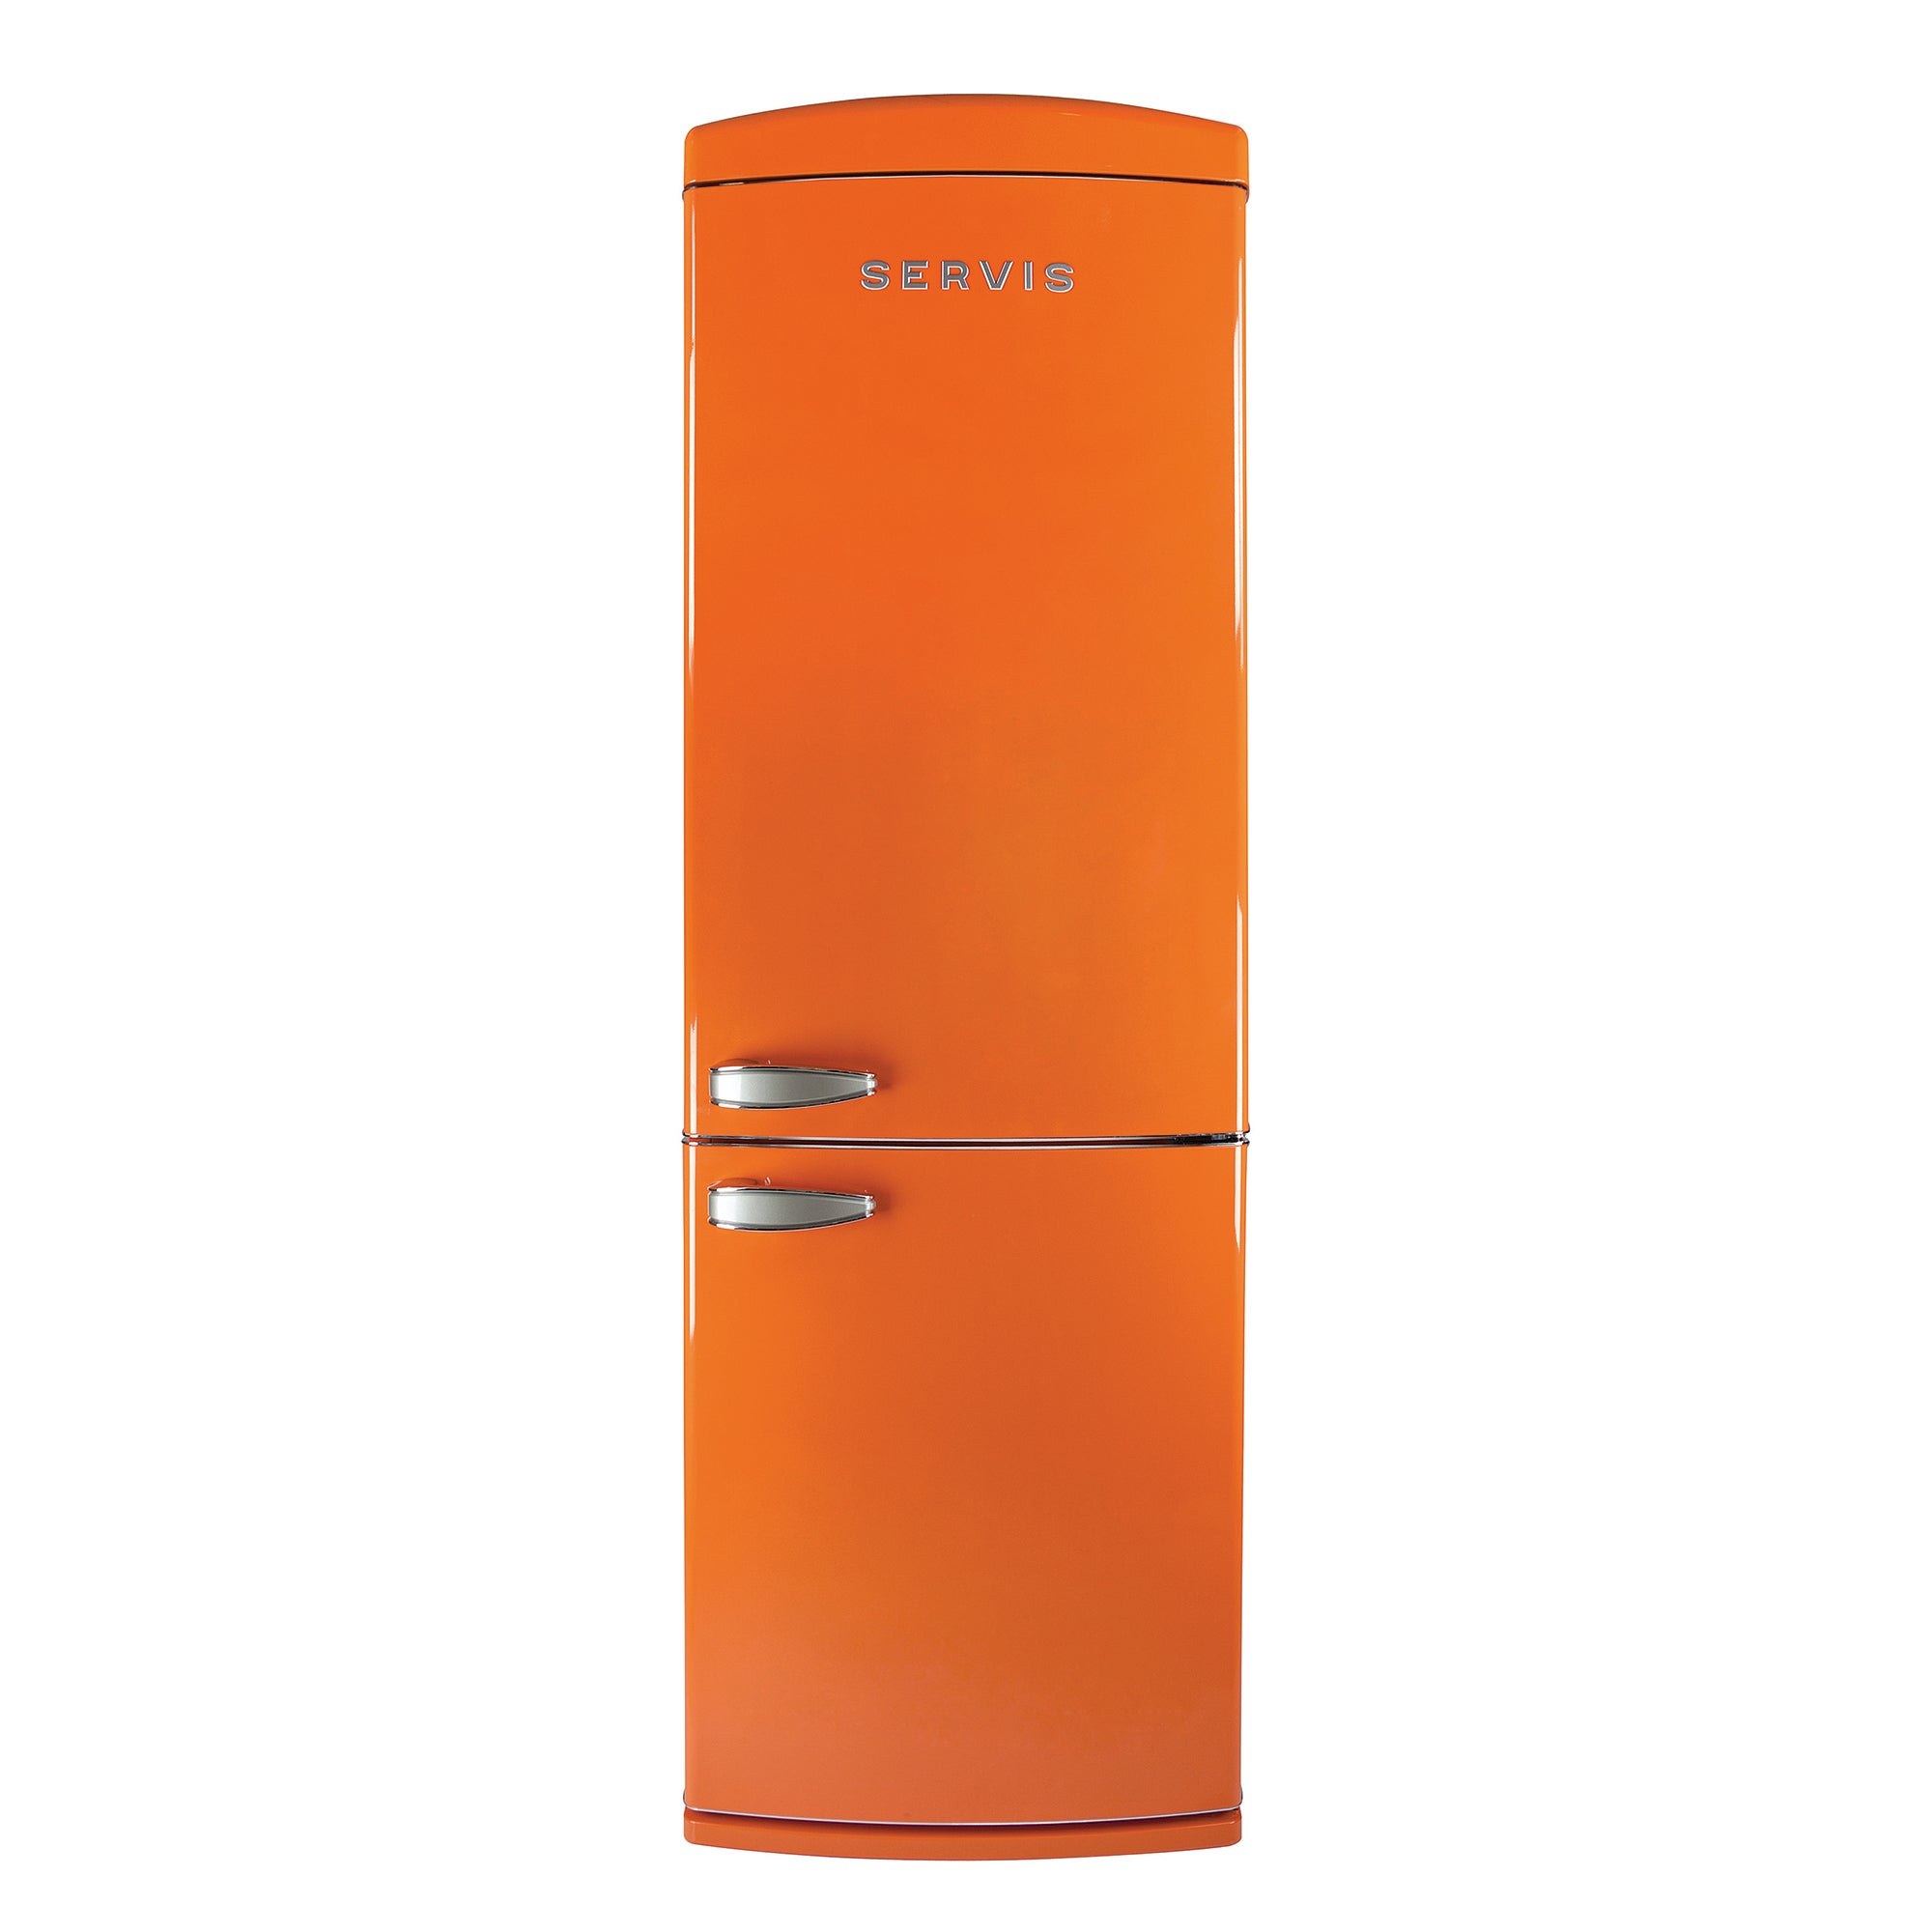 Servis C60185NFTG Orange Retro Style Fridge Freezer